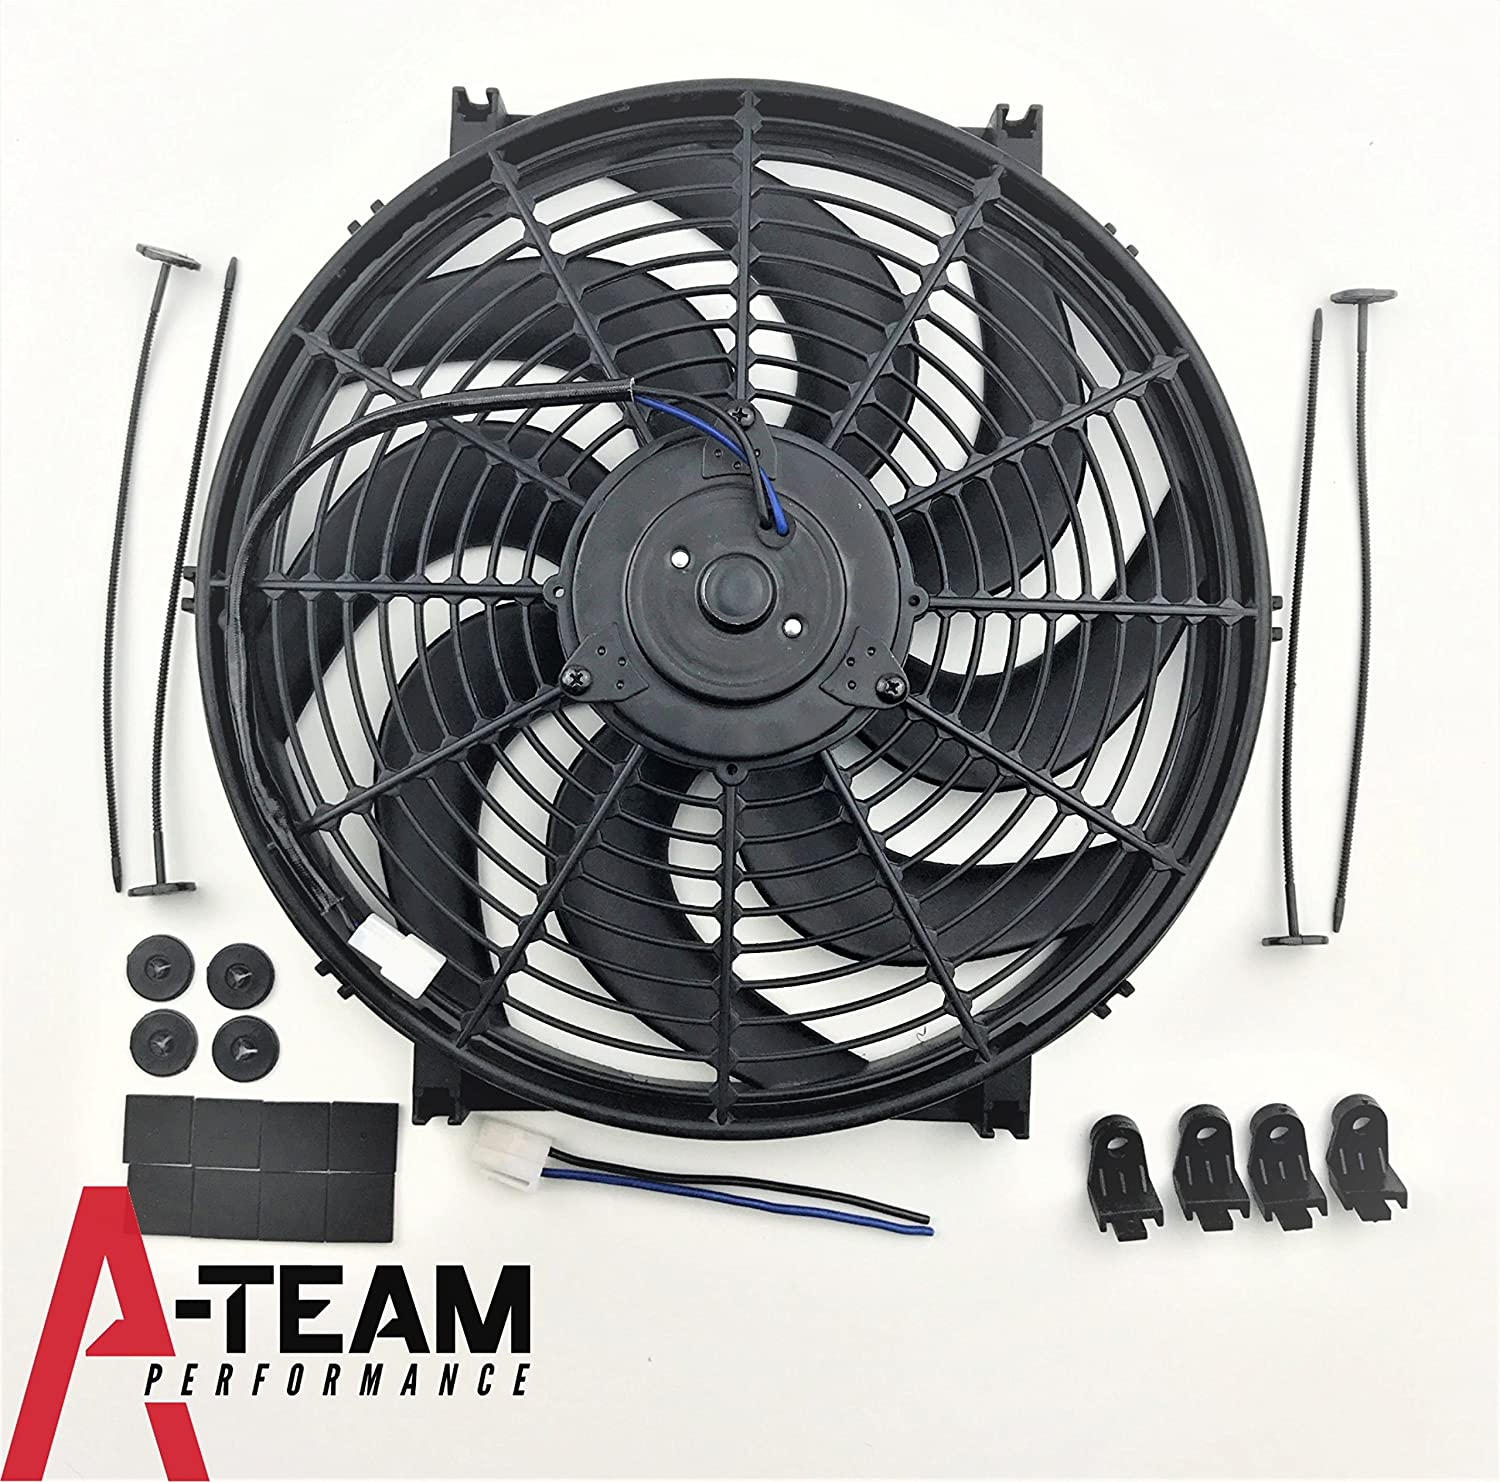 A-Team Performance 110011 14' Heavy Duty 12V Radiator Electric Wide Curved 8 Blade FAN 2400 CFM Reversible Push or Pull with Mounting Kit